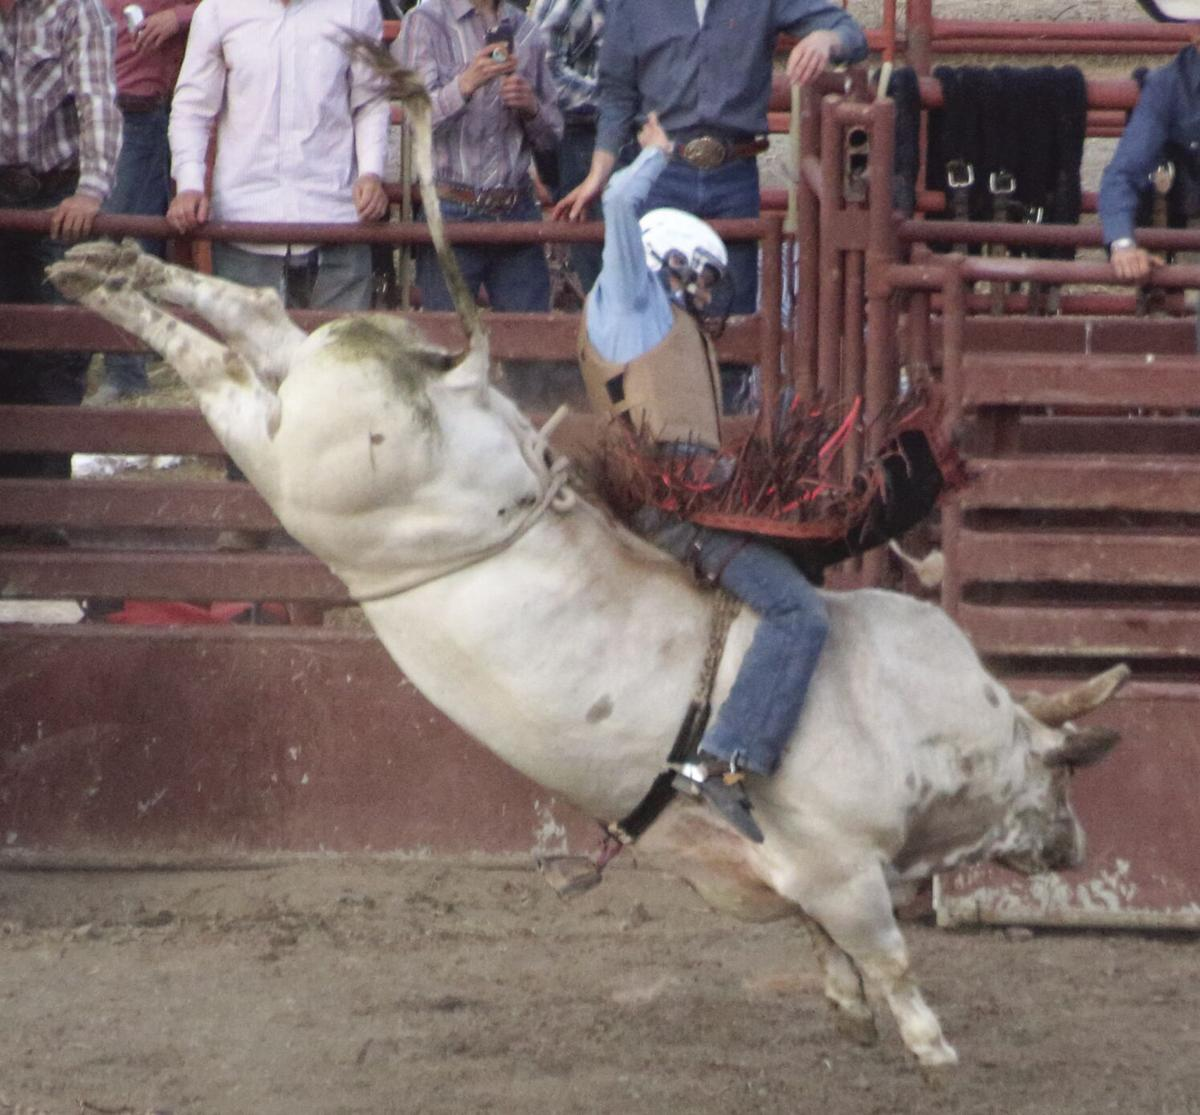 Stonyford Rodeo returns to nice weather, crowds